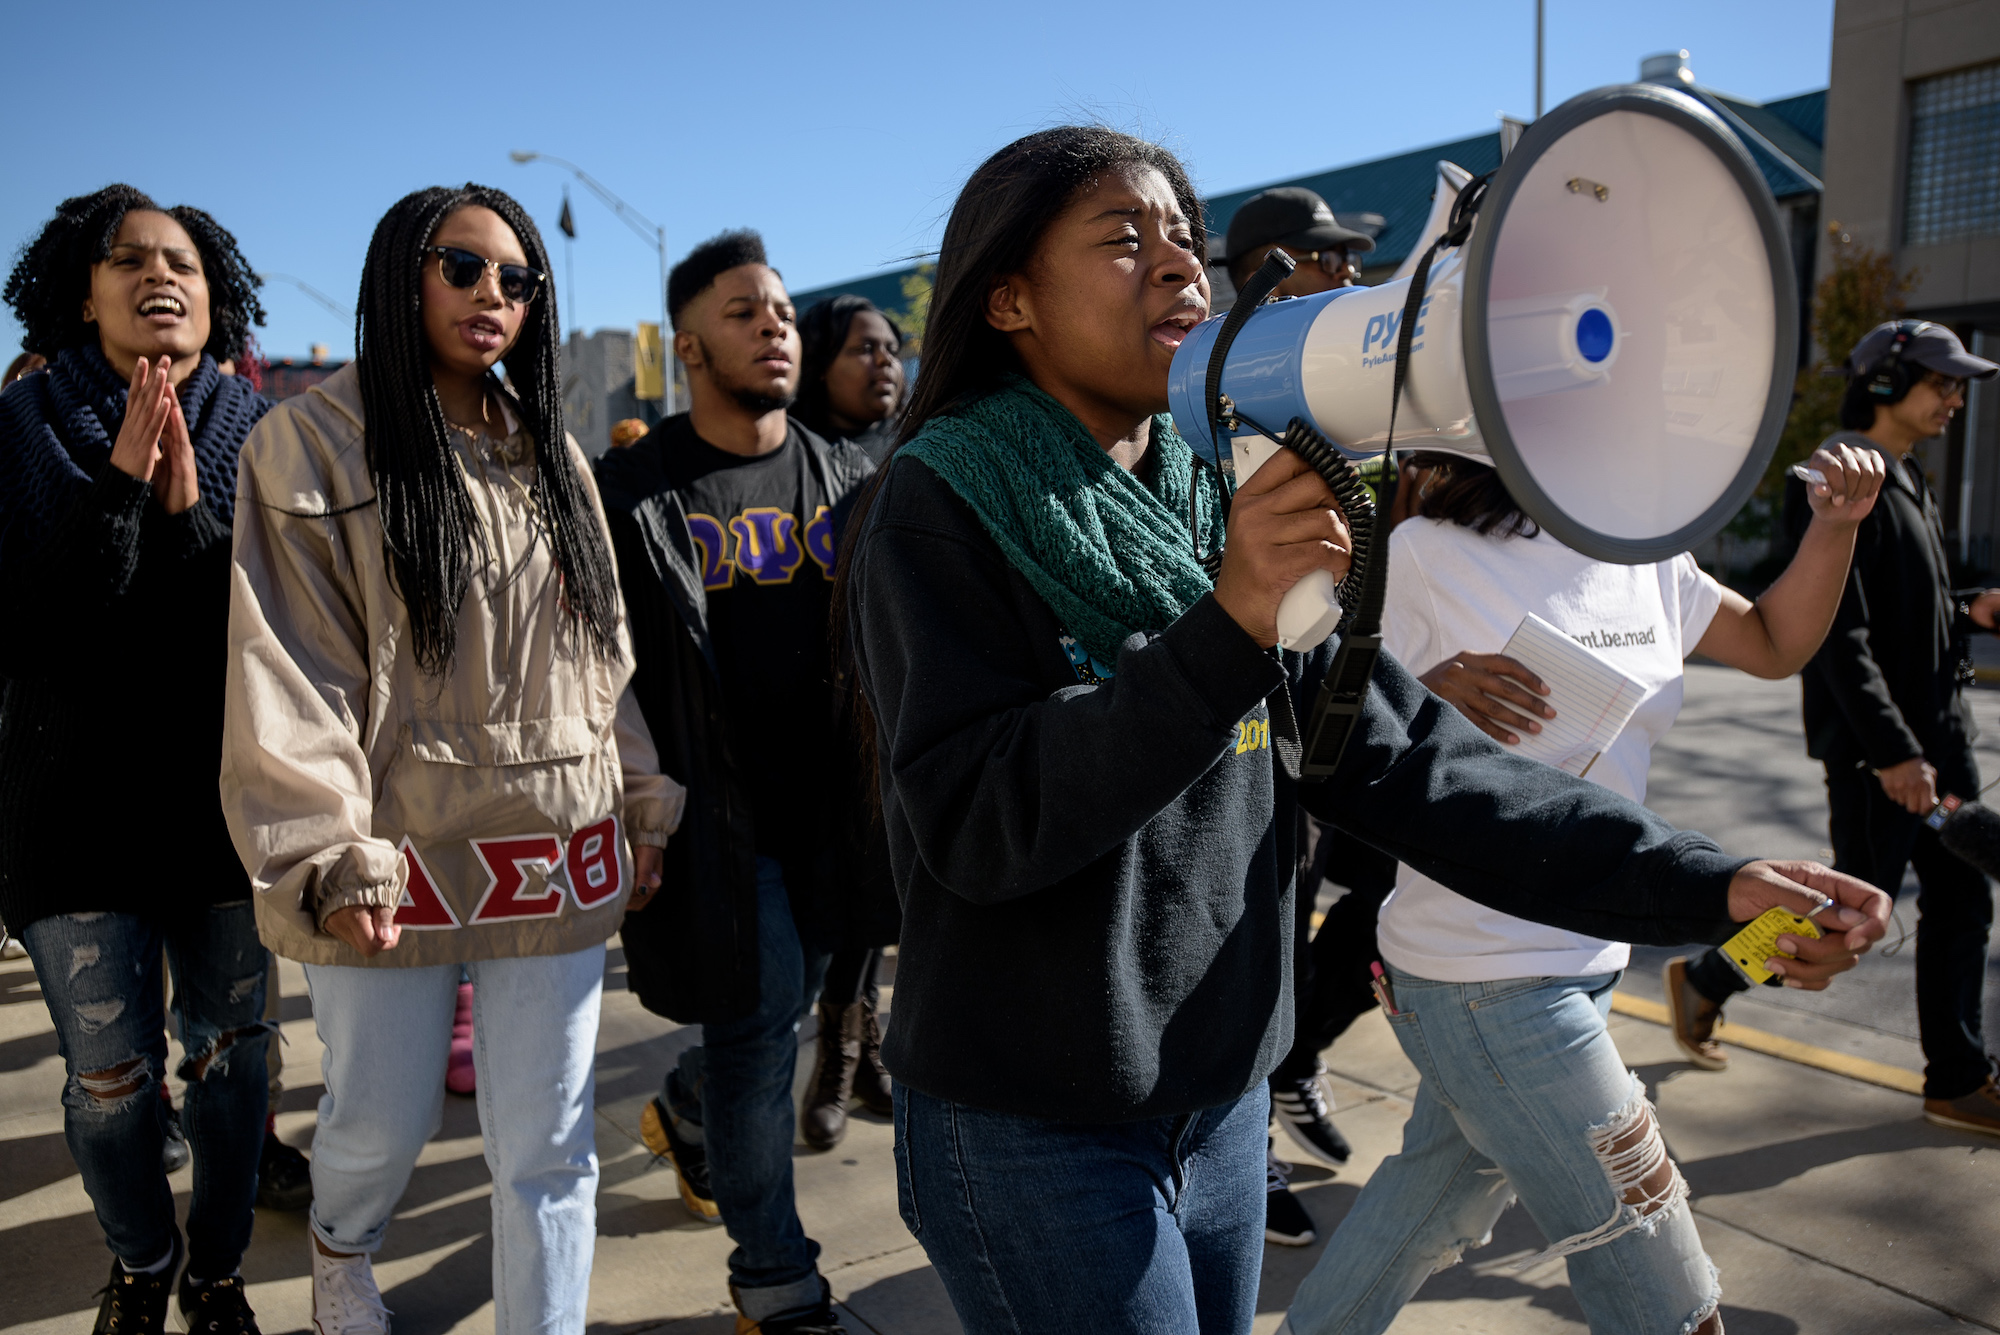 Dear Black students: Don't let white efforts at miseducation deny your legacy